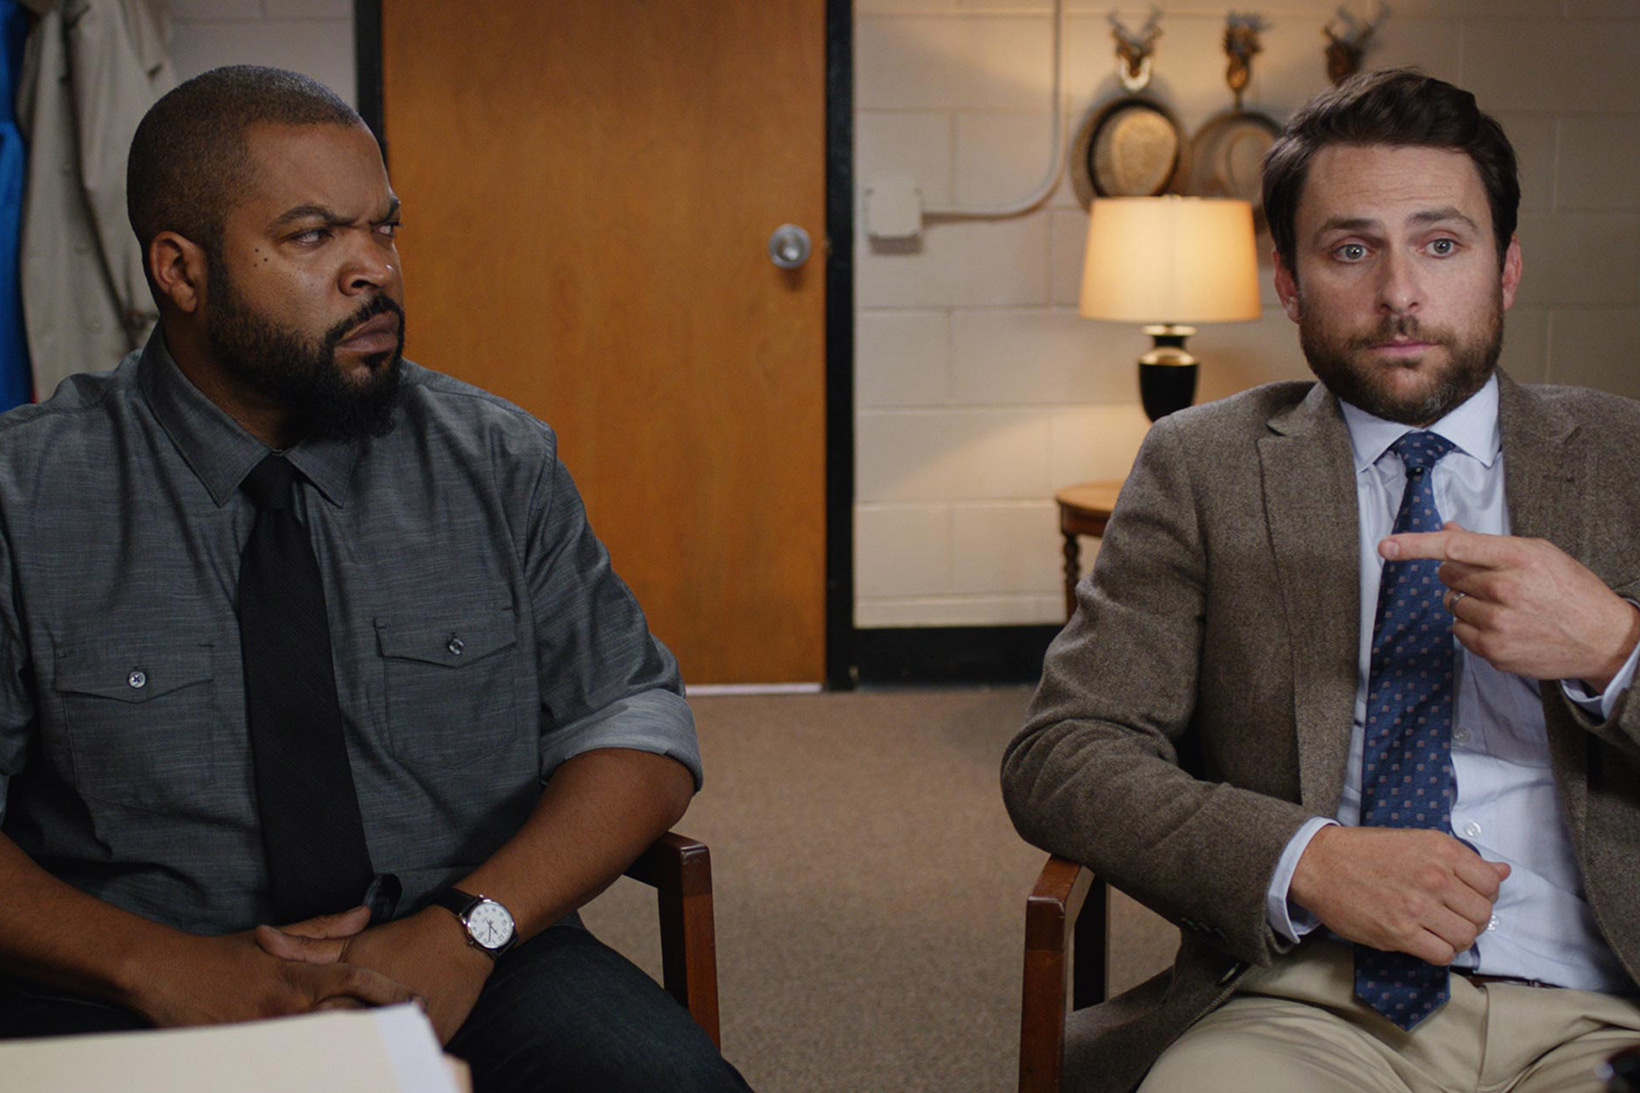 Teachers Ice Cube & Charlie Day Square up in New Movie 'Fist Fight'